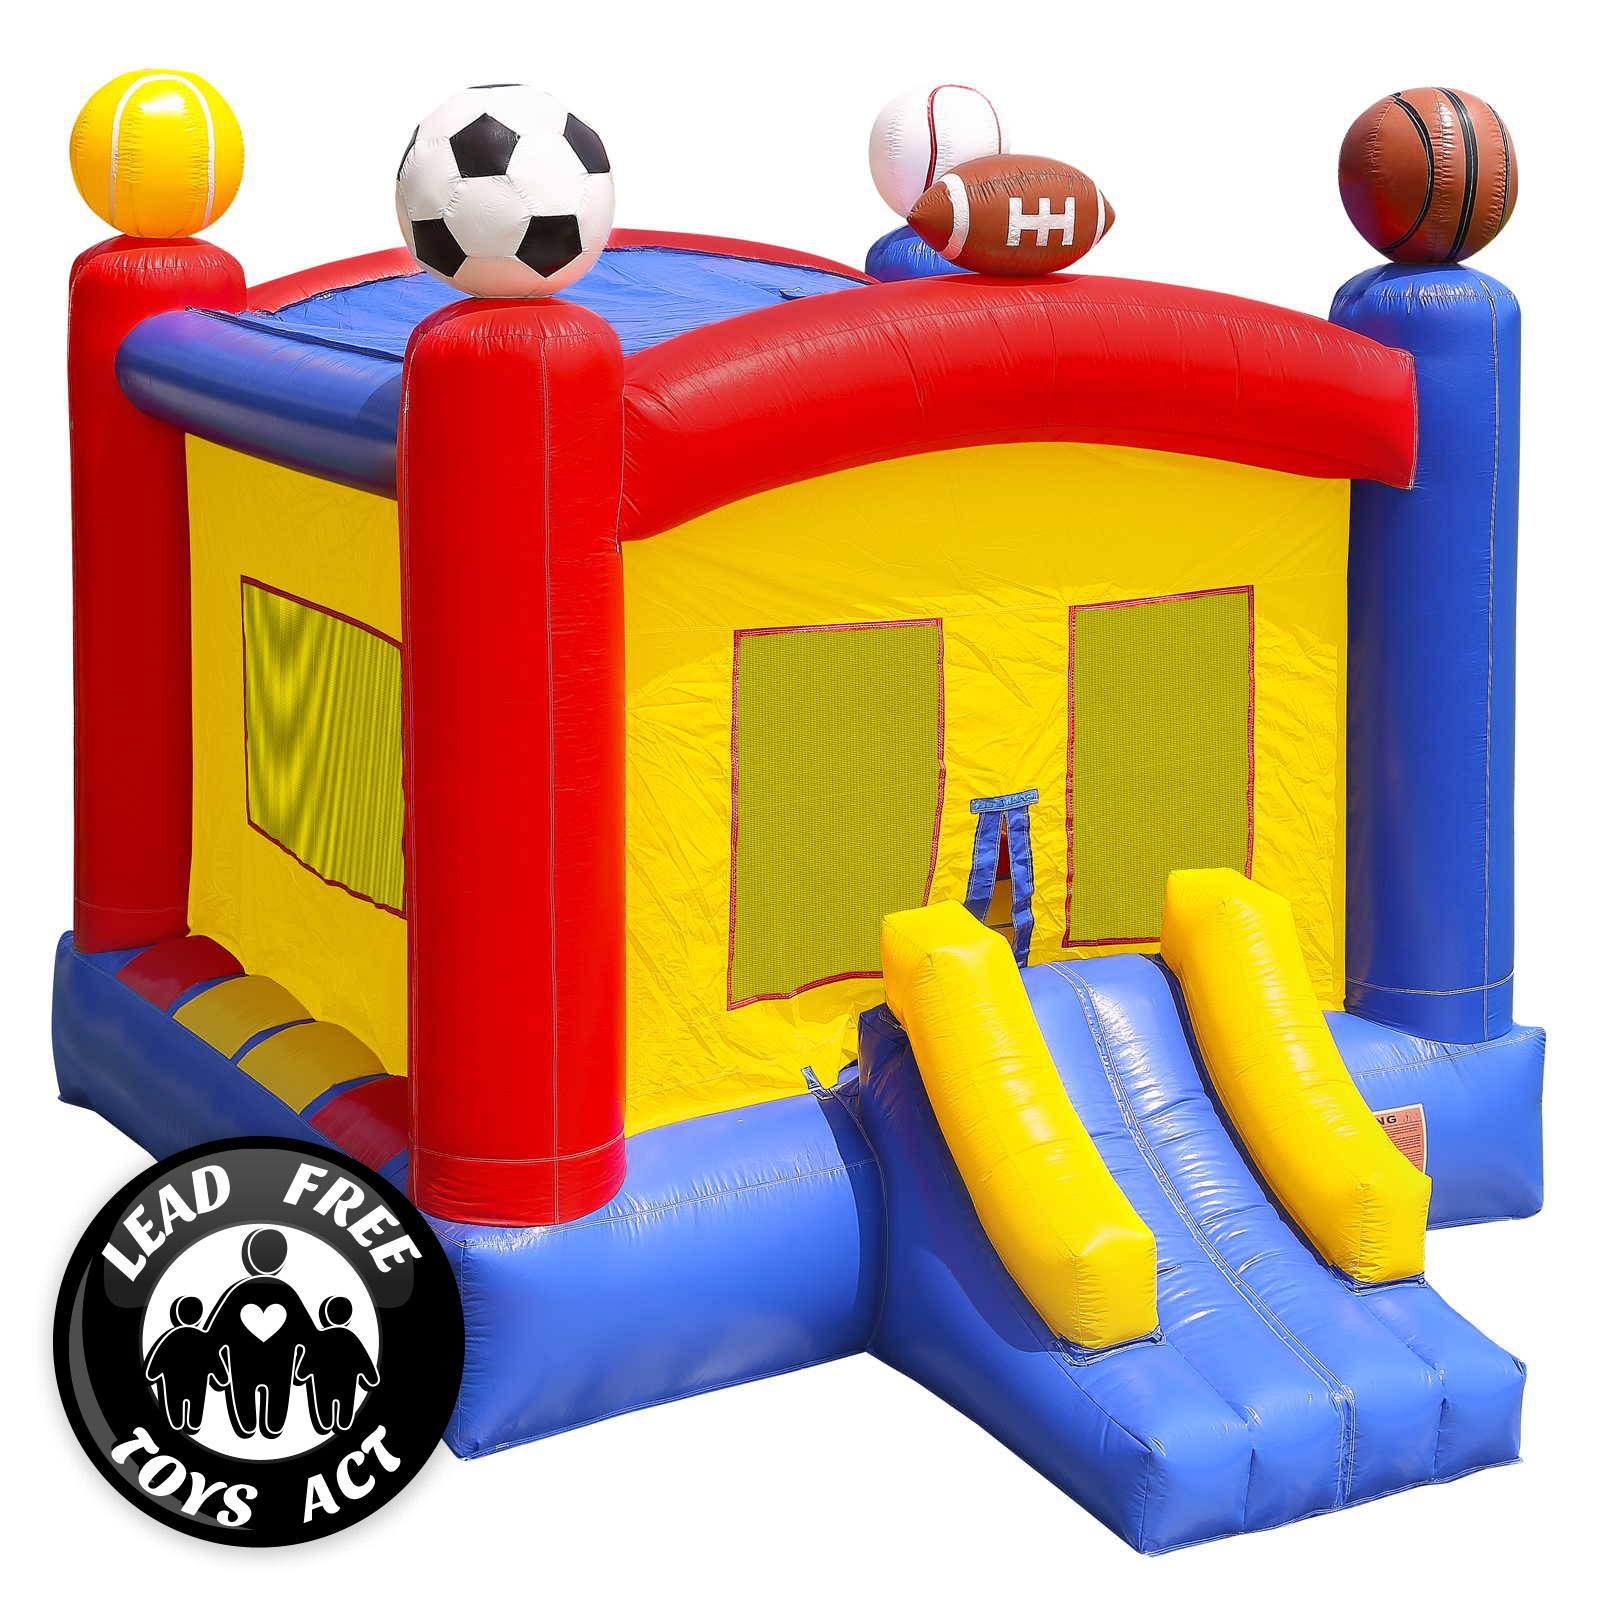 Bounce House Blower : Commercial grade bounce house pvc inflatable sports